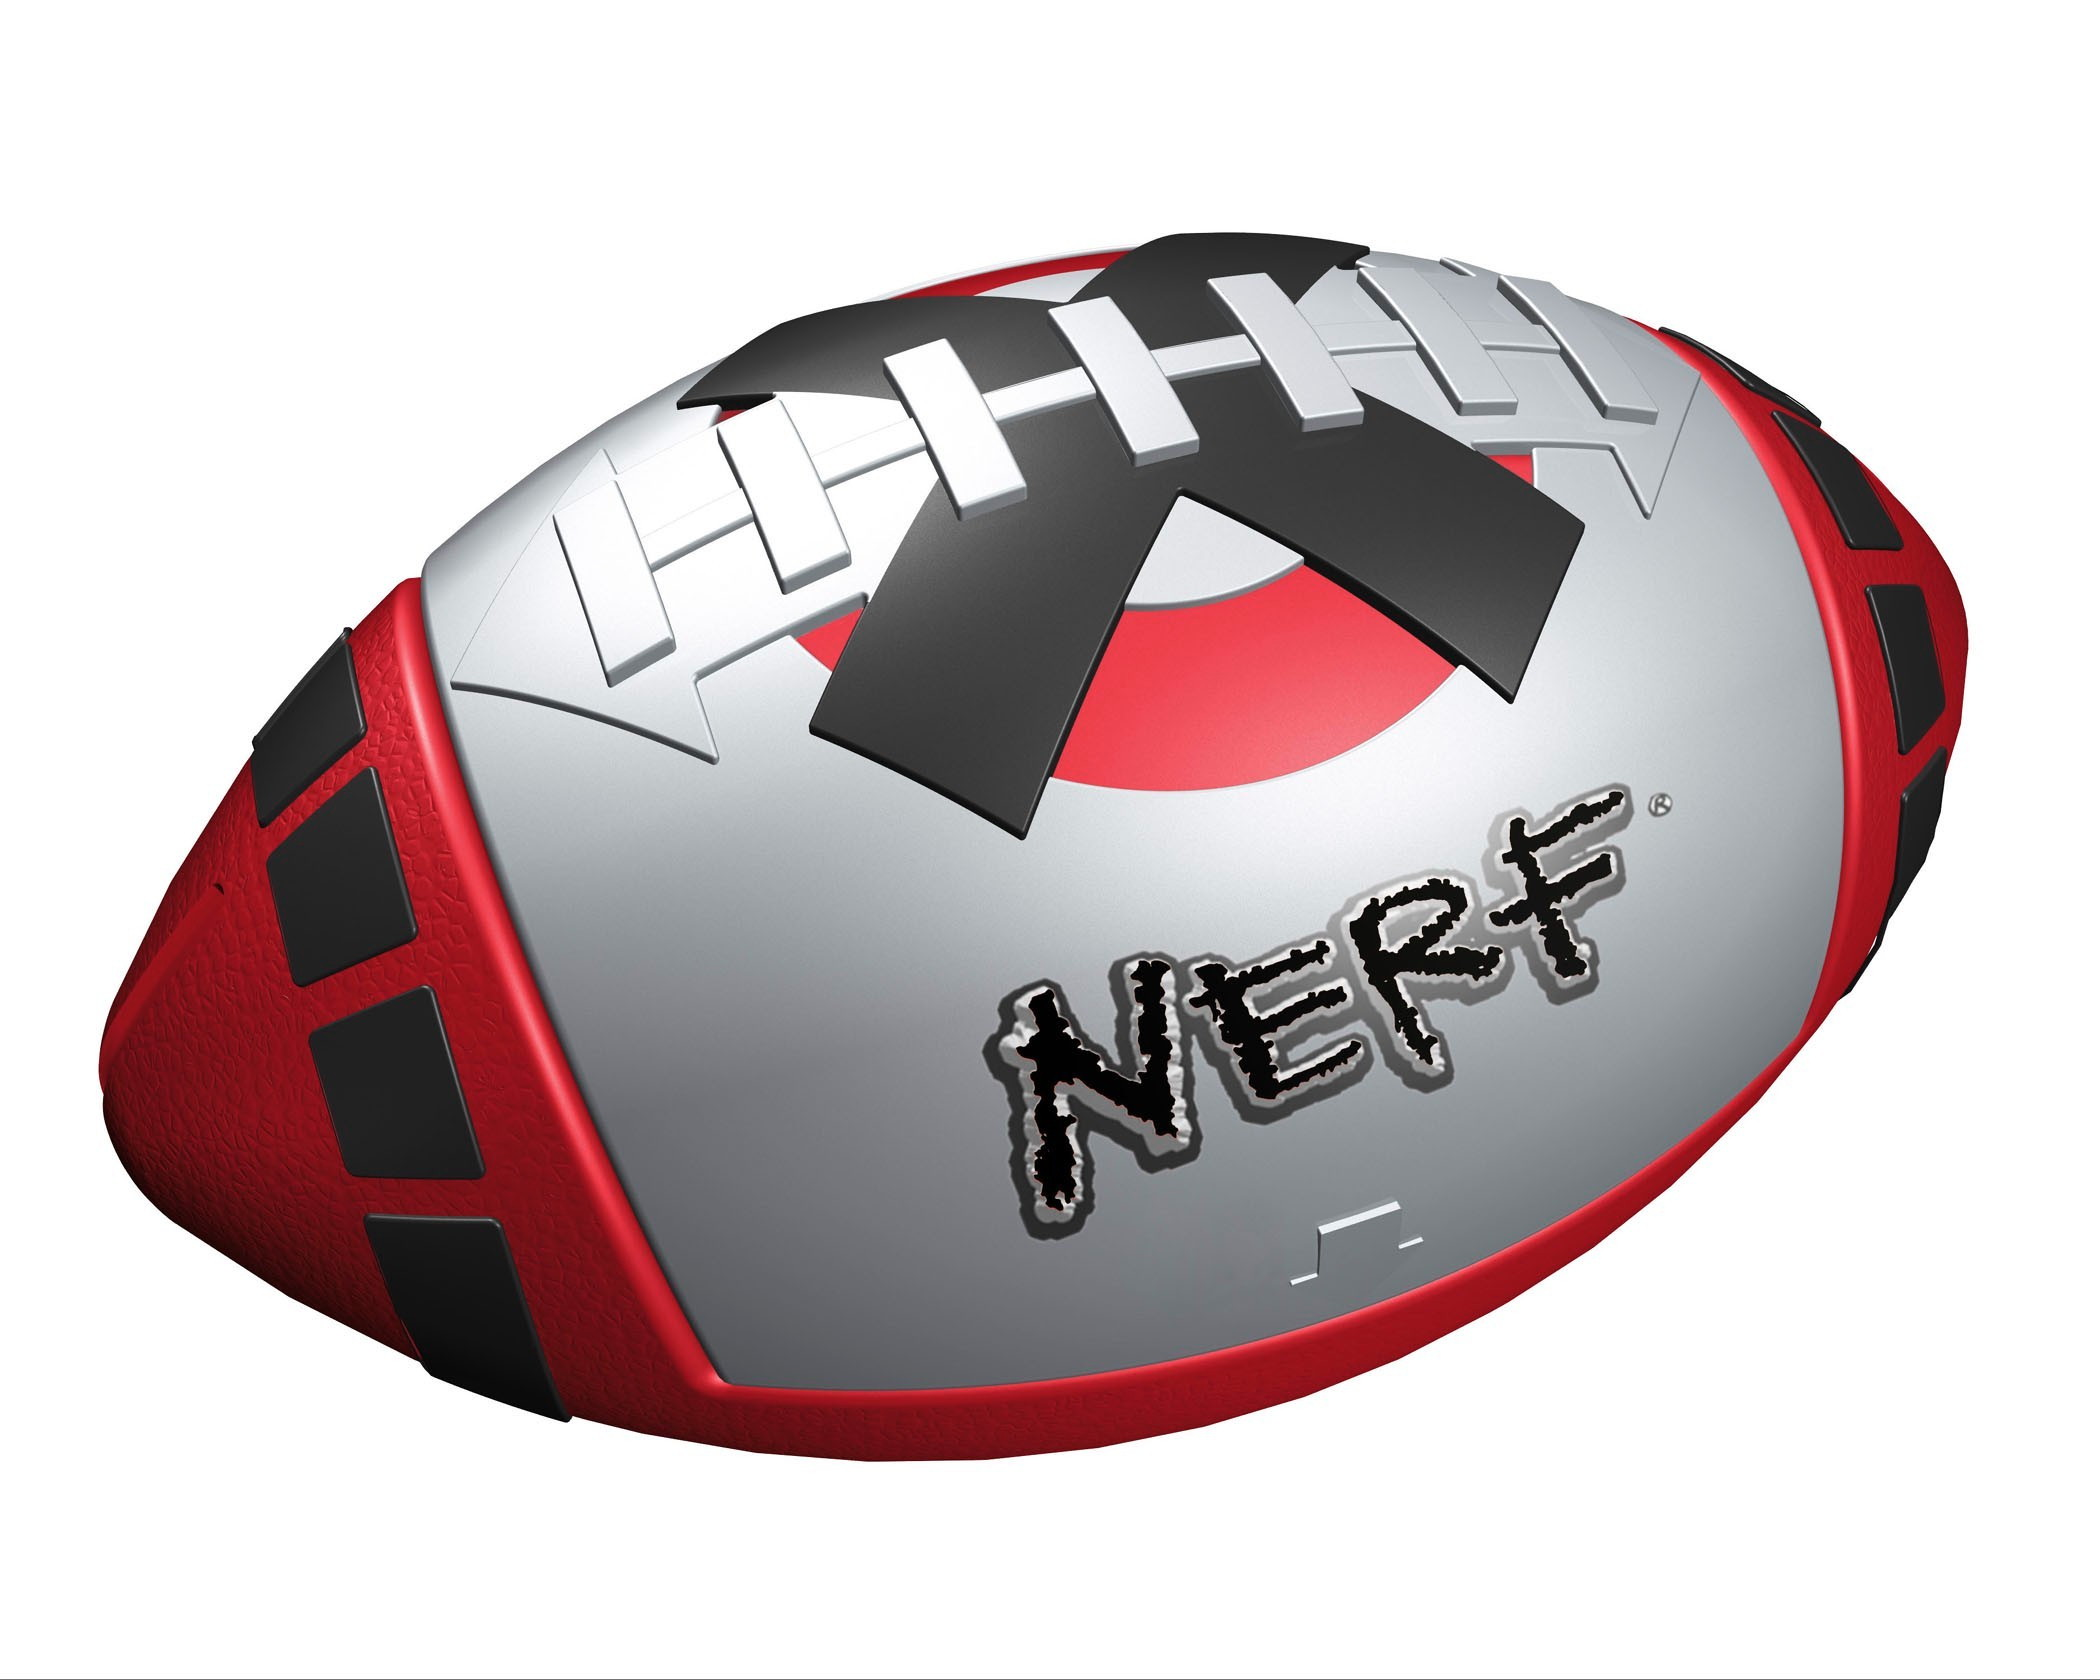 Picture of Label on Recalled Football